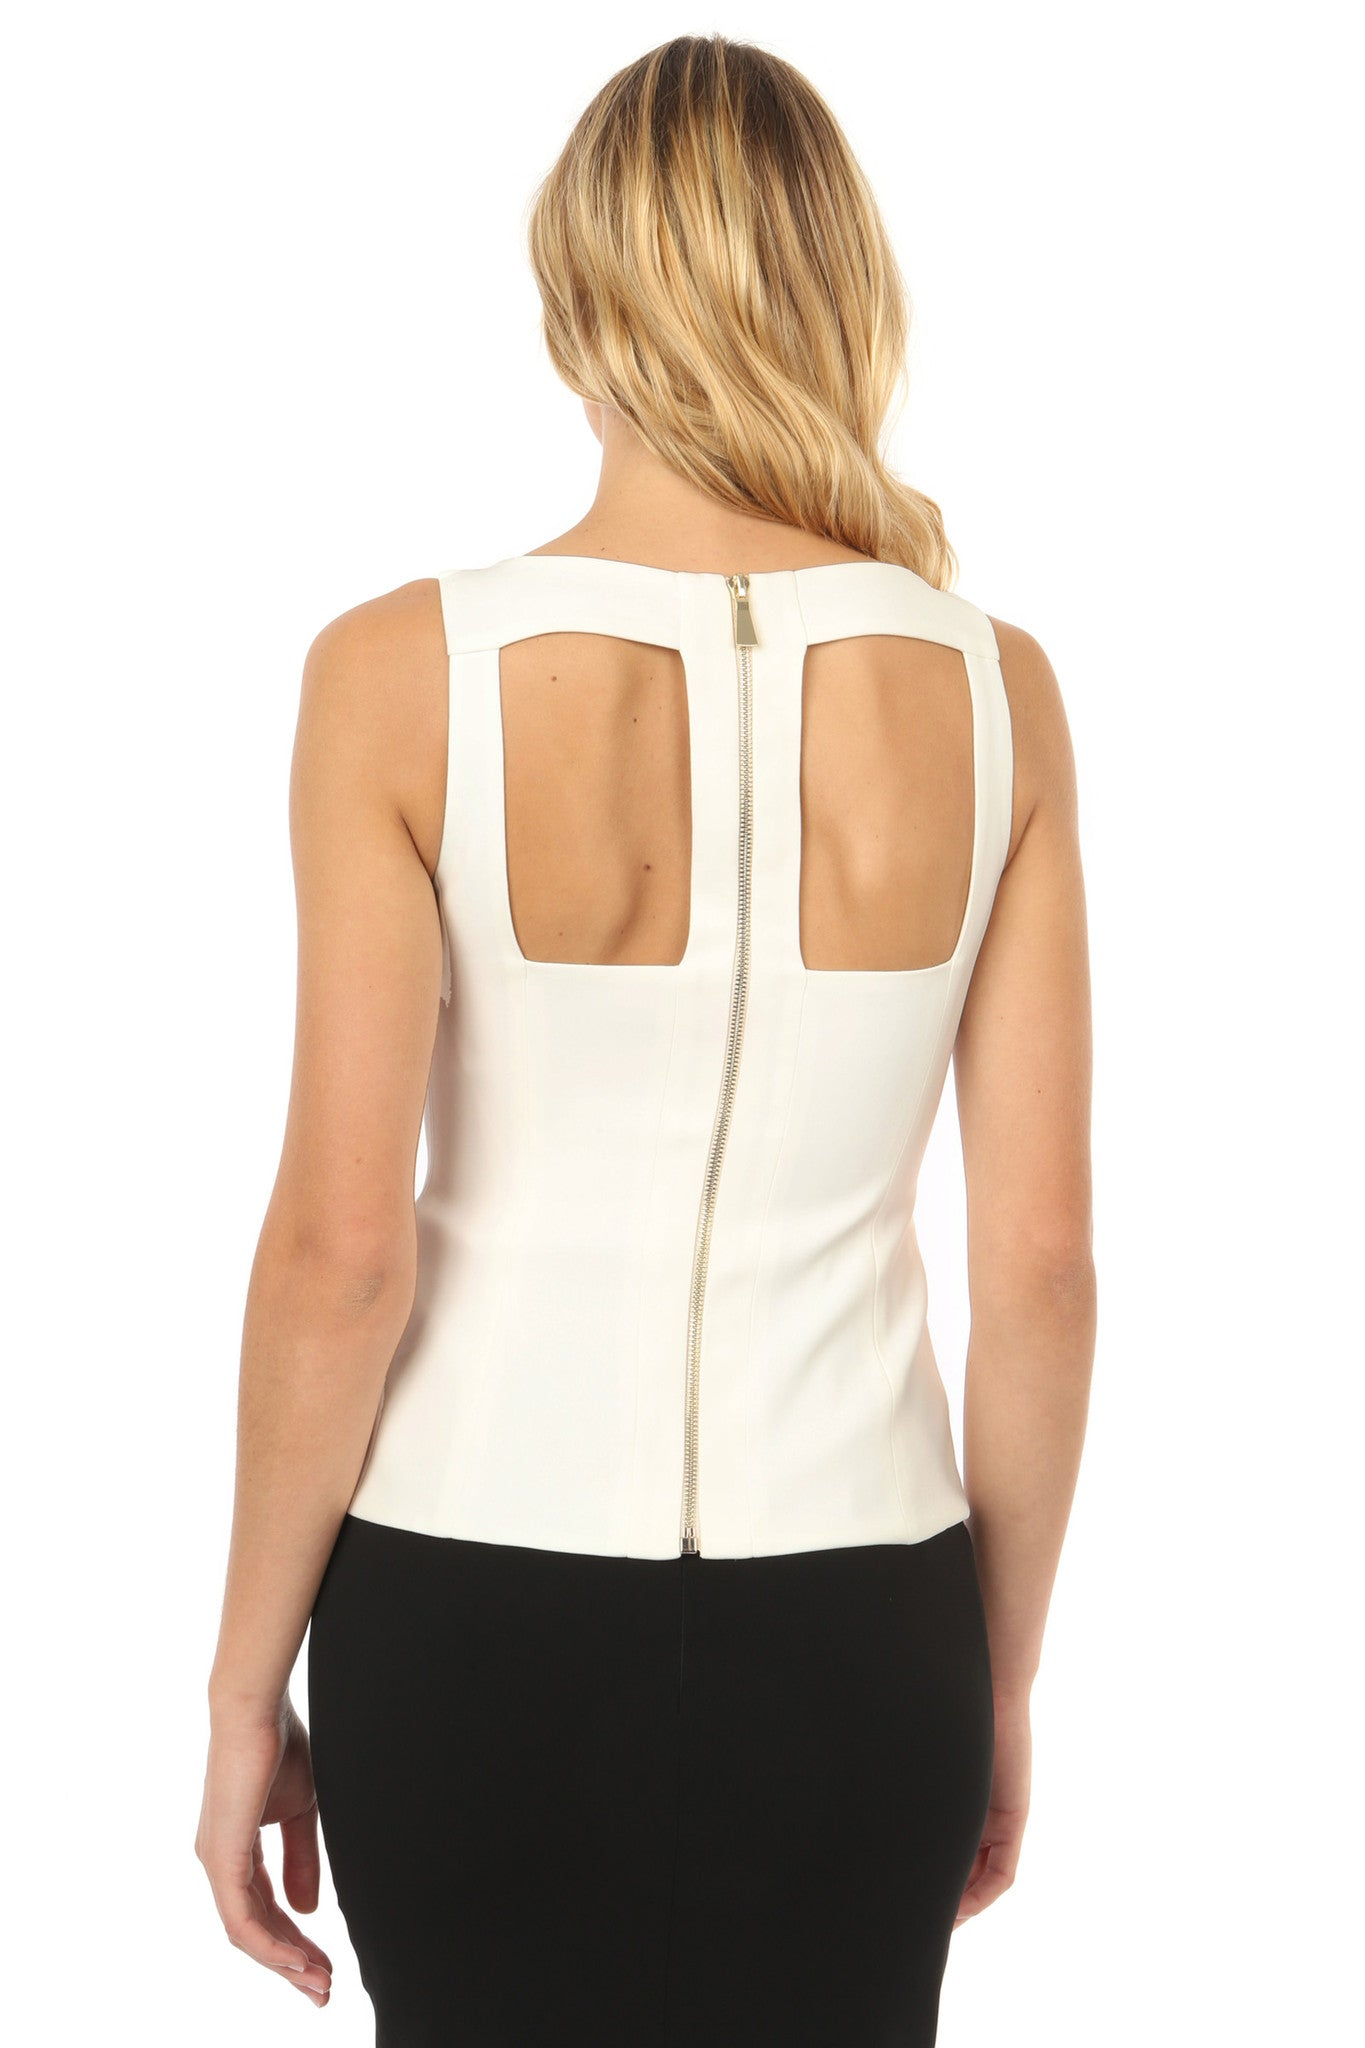 Jay Godfrey Ivory Cut-Out Top - Front View